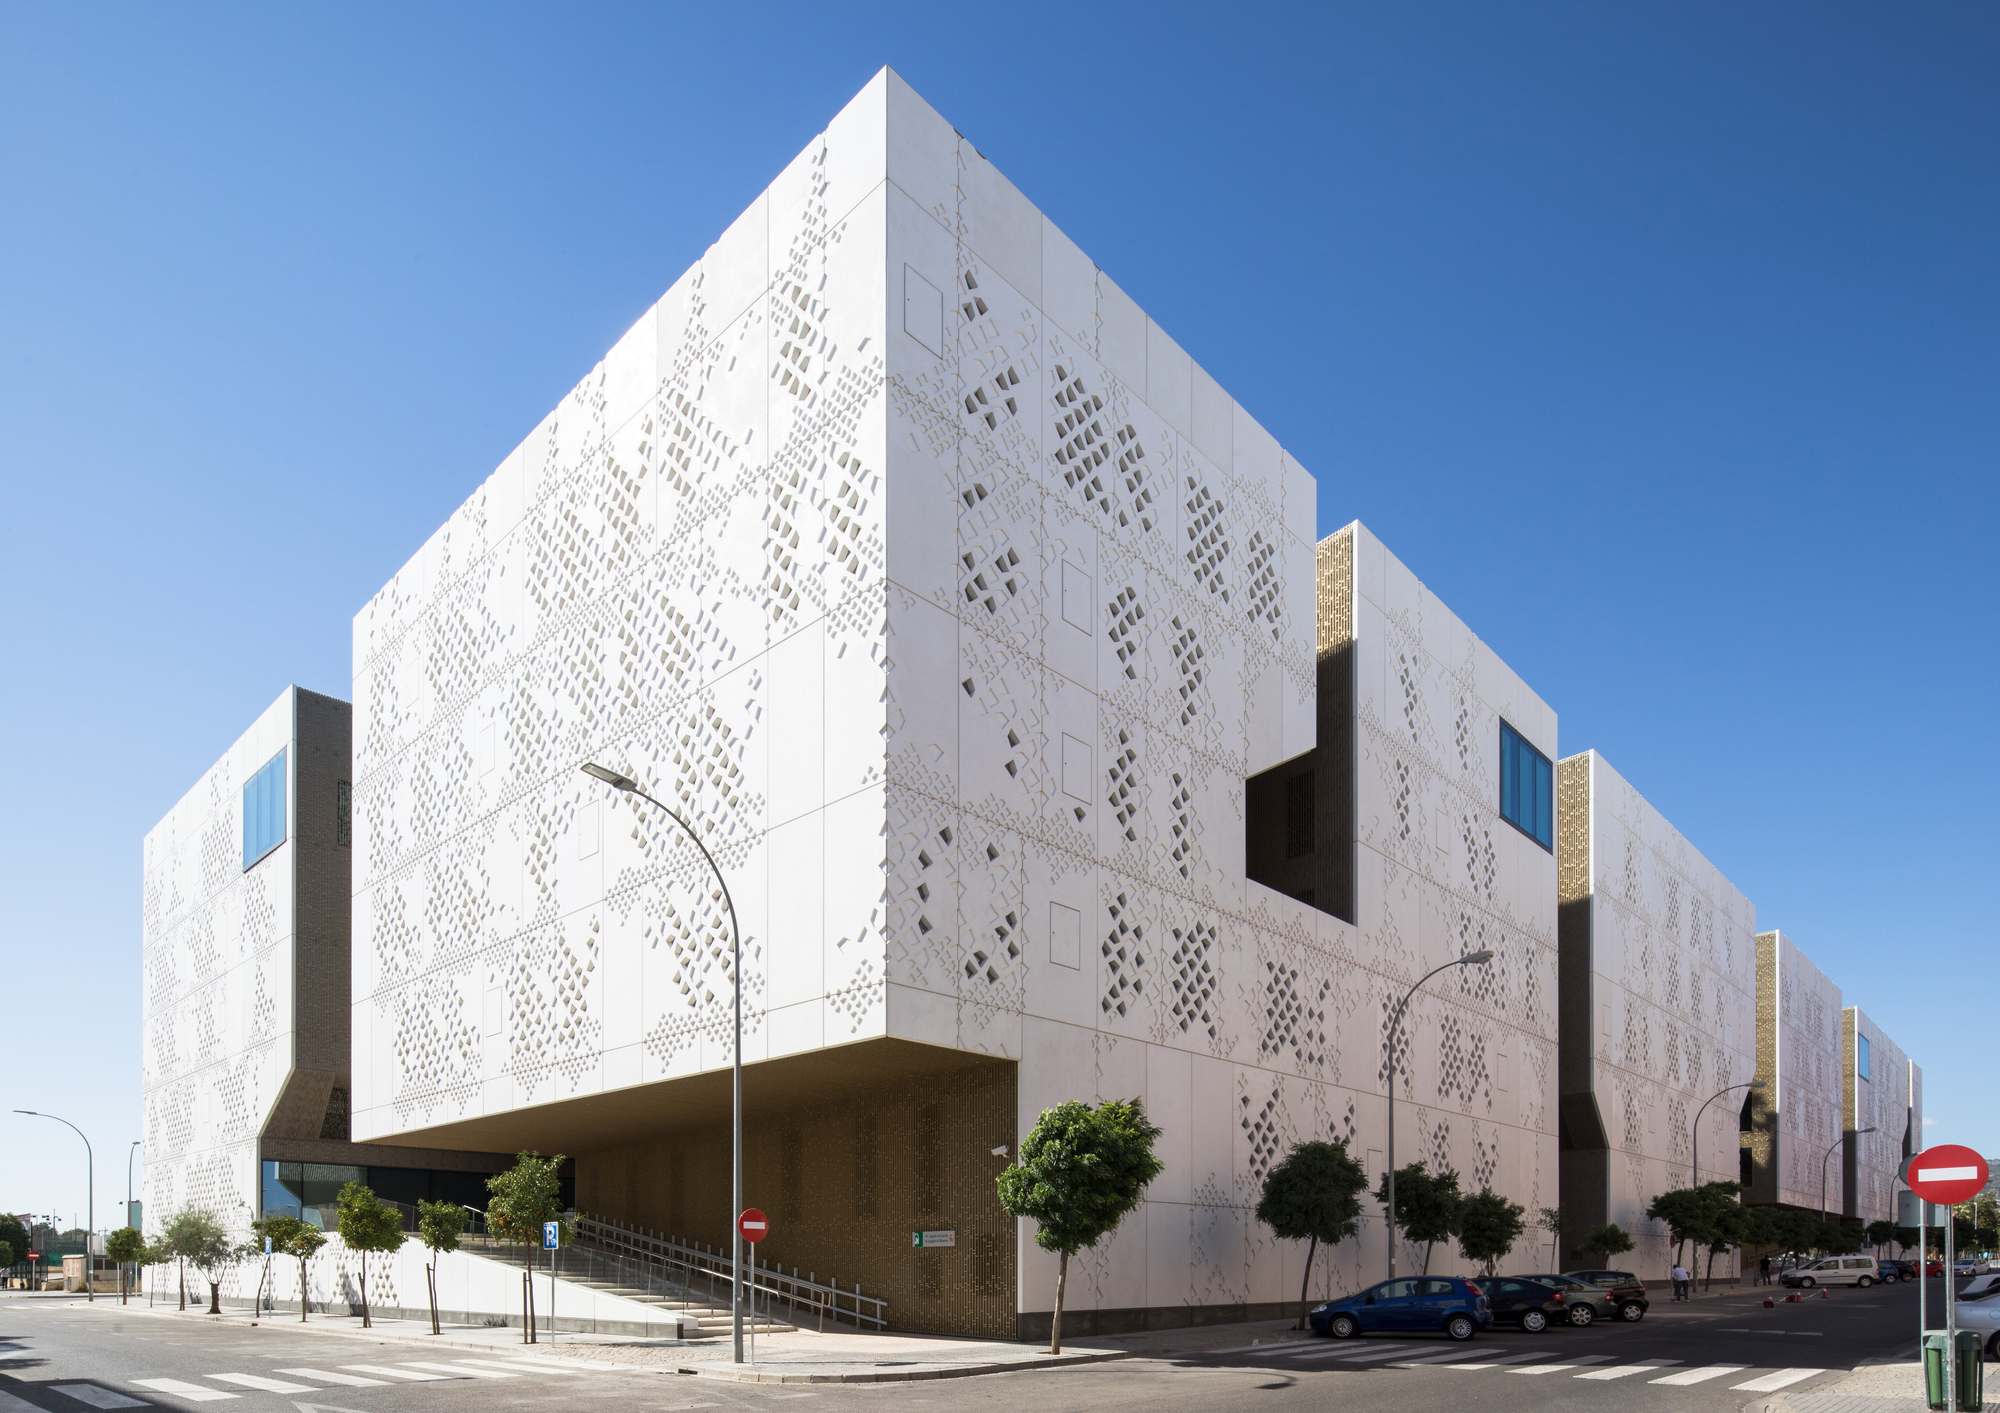 States Visited Map >> Palace of Justice / Mecanoo + AYESA | ArchDaily